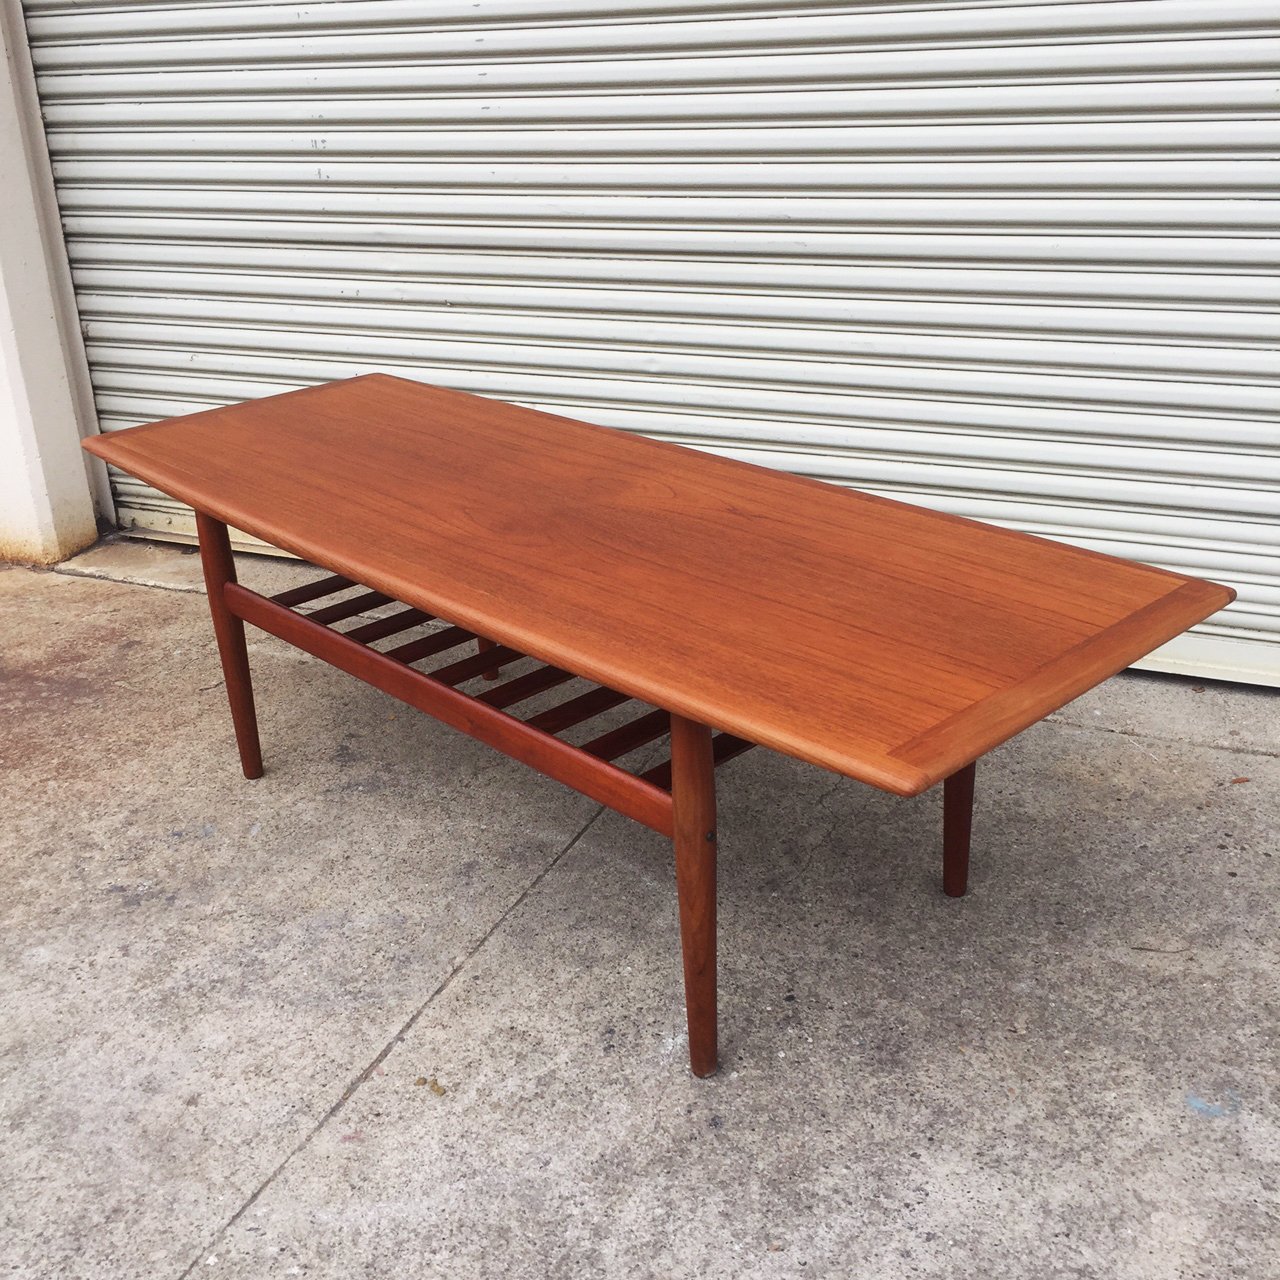 Teak Burger Coffee Table: Grete Jalk Teak Coffee Table